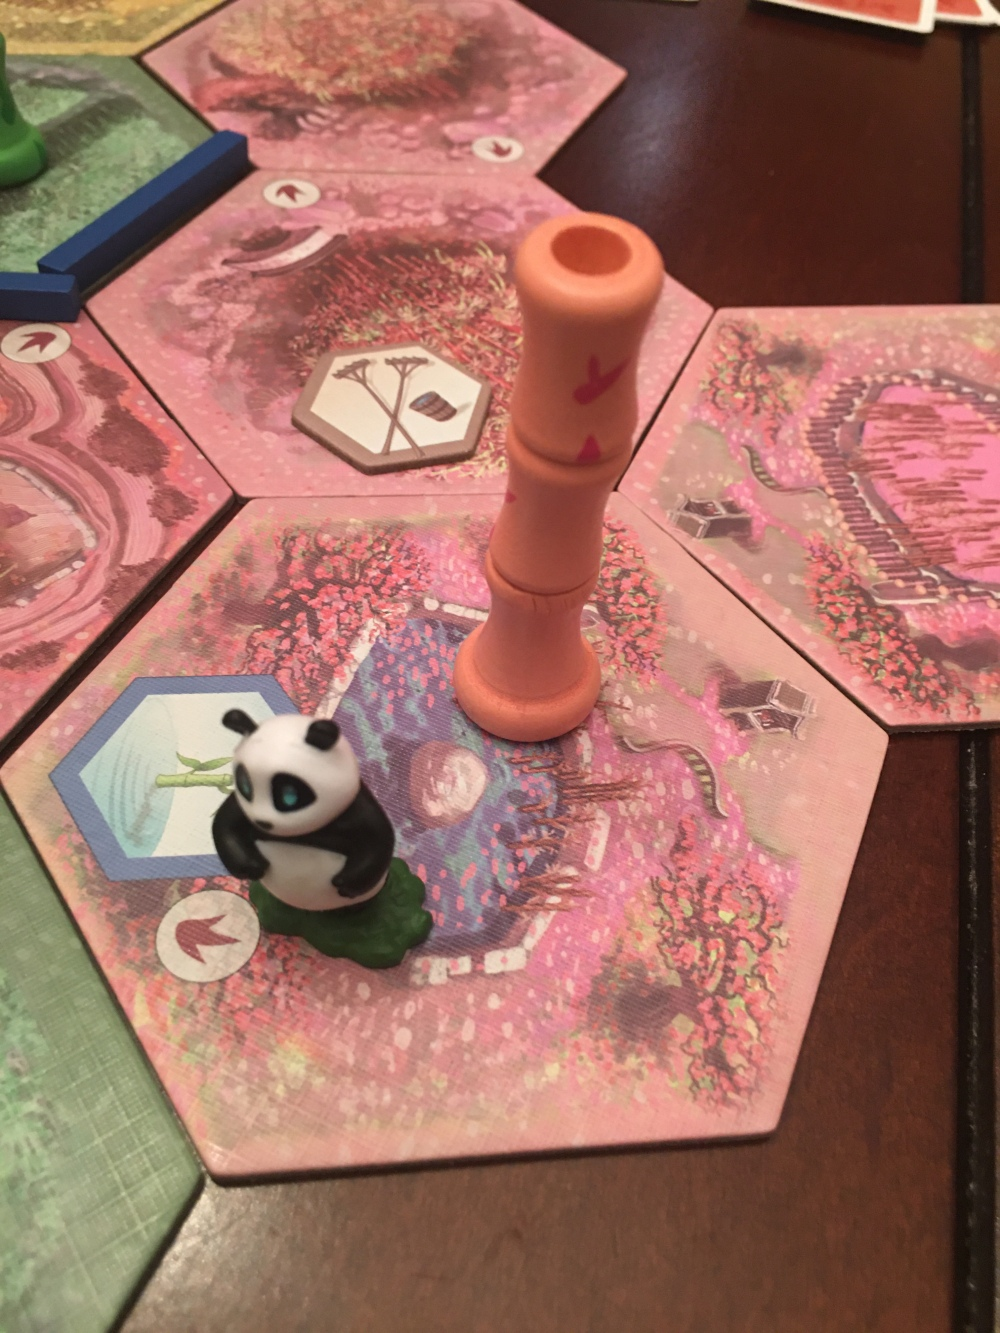 Panda figurine on tiles with pink bamboo pieces.